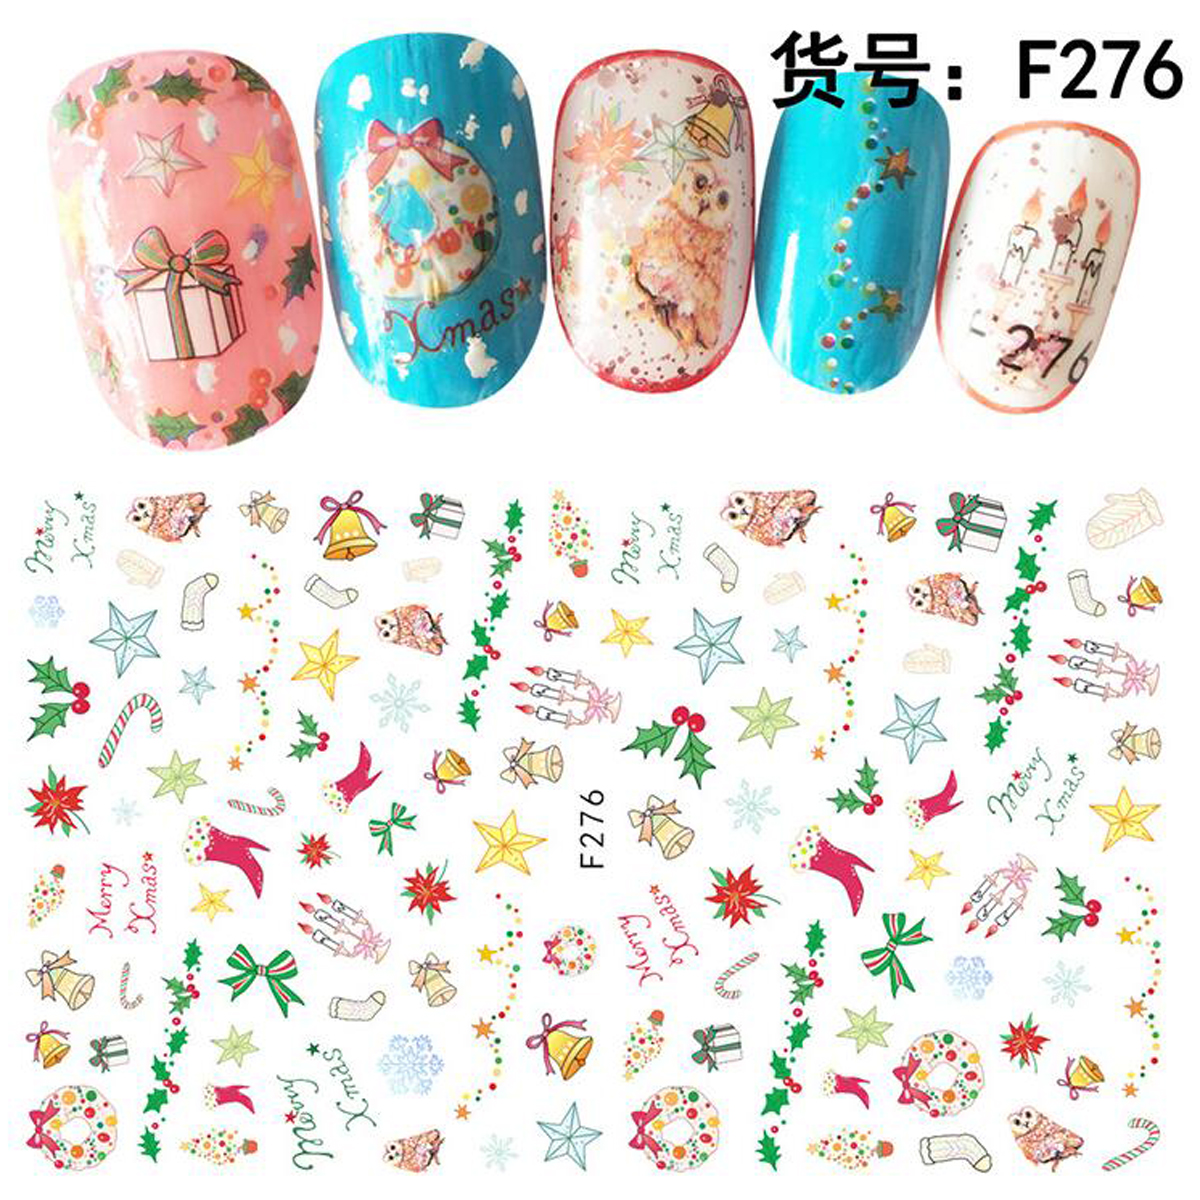 New Christmas Nail Sticker Santa Claus Snowflakes Cute Snowman Nail Decals Applique Strap Plastic Stereo 3D Stickers 10 Type